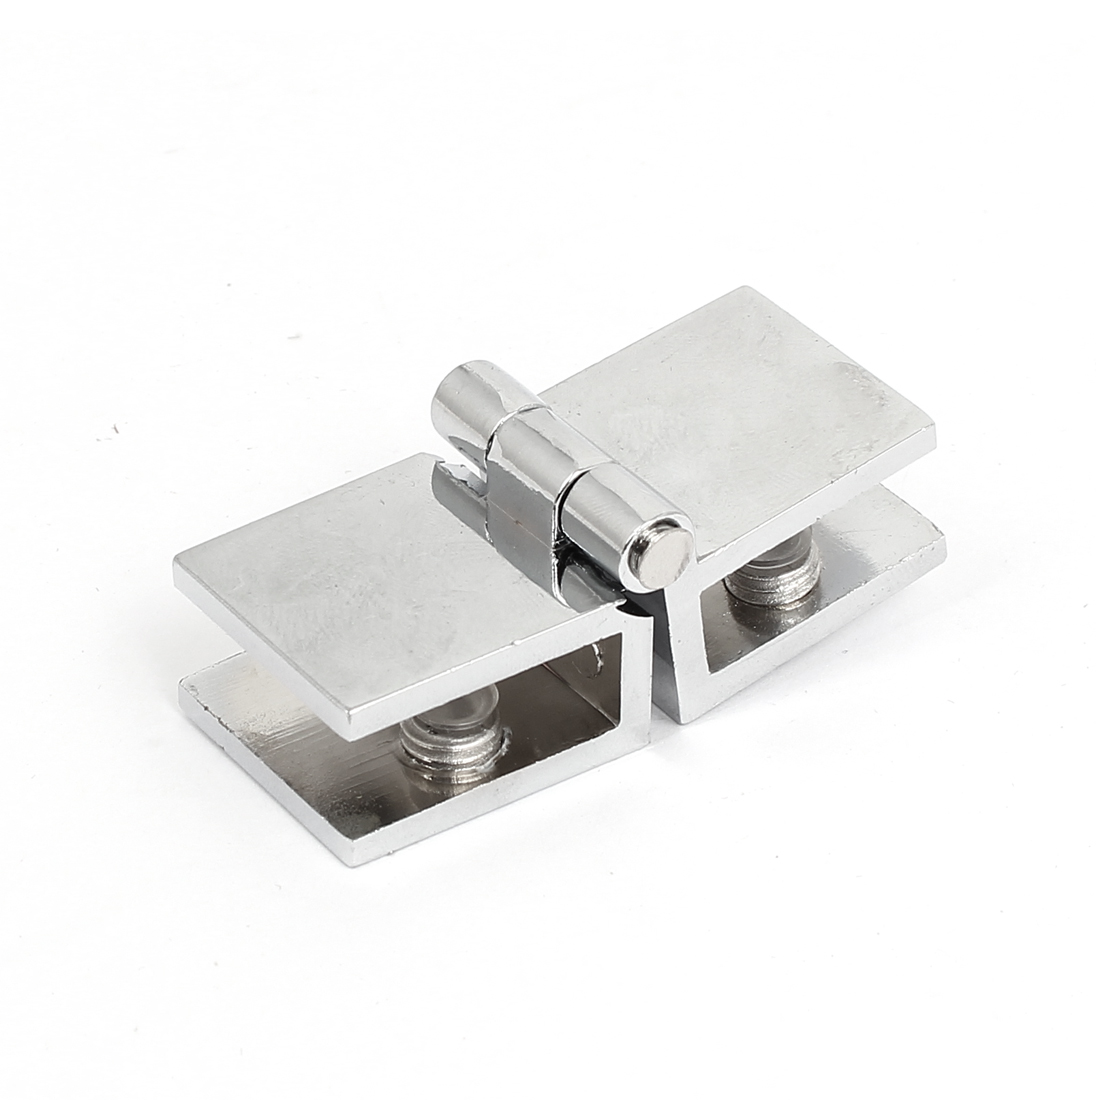 5mm-8mm Adjustable Thickness Zinc Alloy Glass Clip Clamp Support